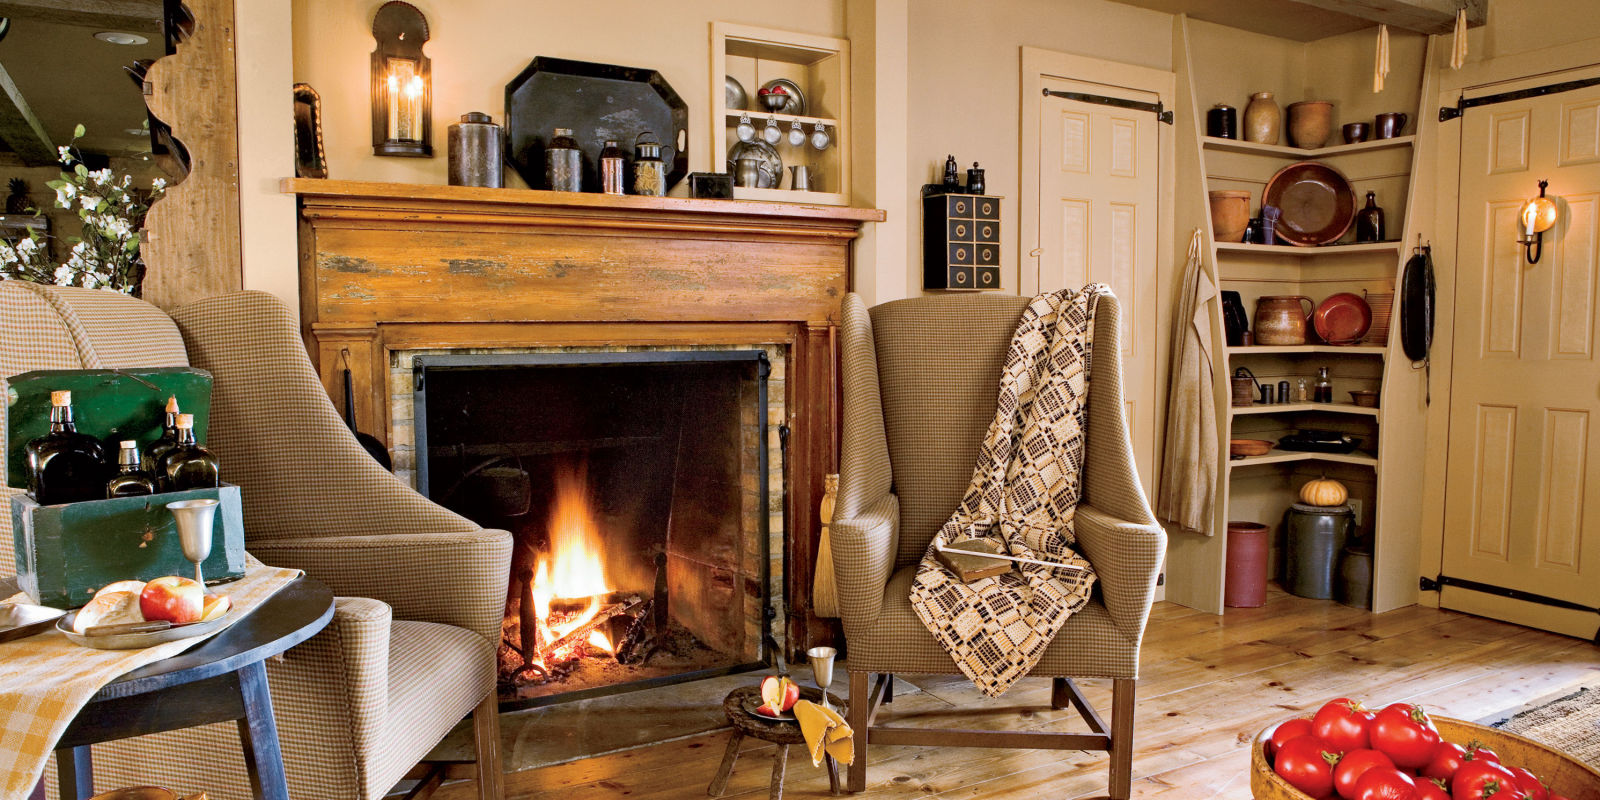 40 fireplace design ideas fireplace mantel decorating ideas On open fireplace decoration